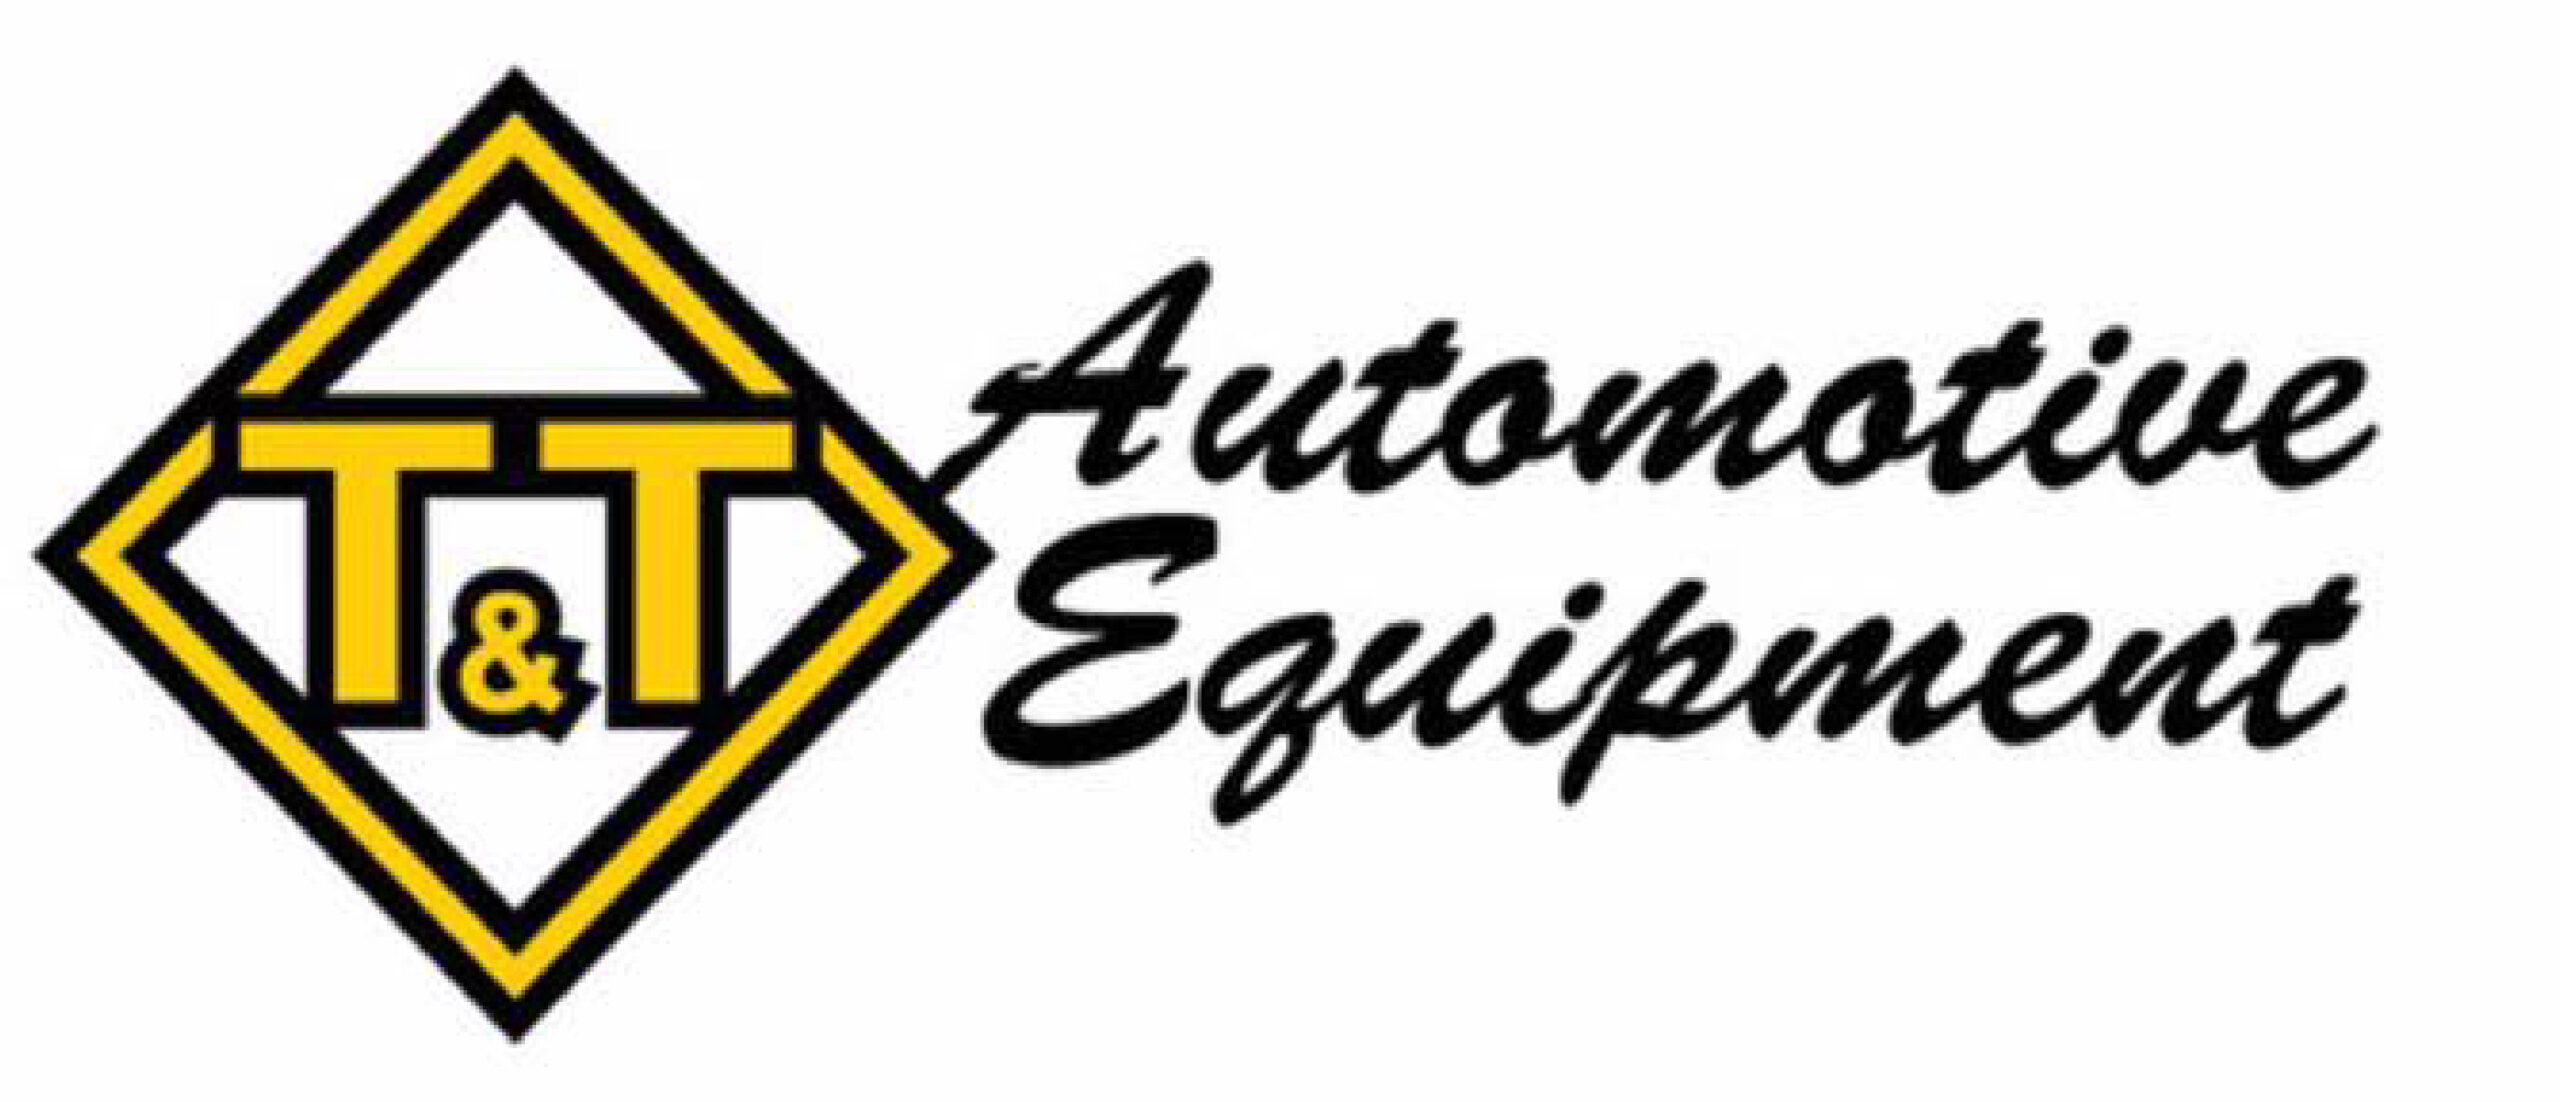 T&T Automotive Equipment Logo